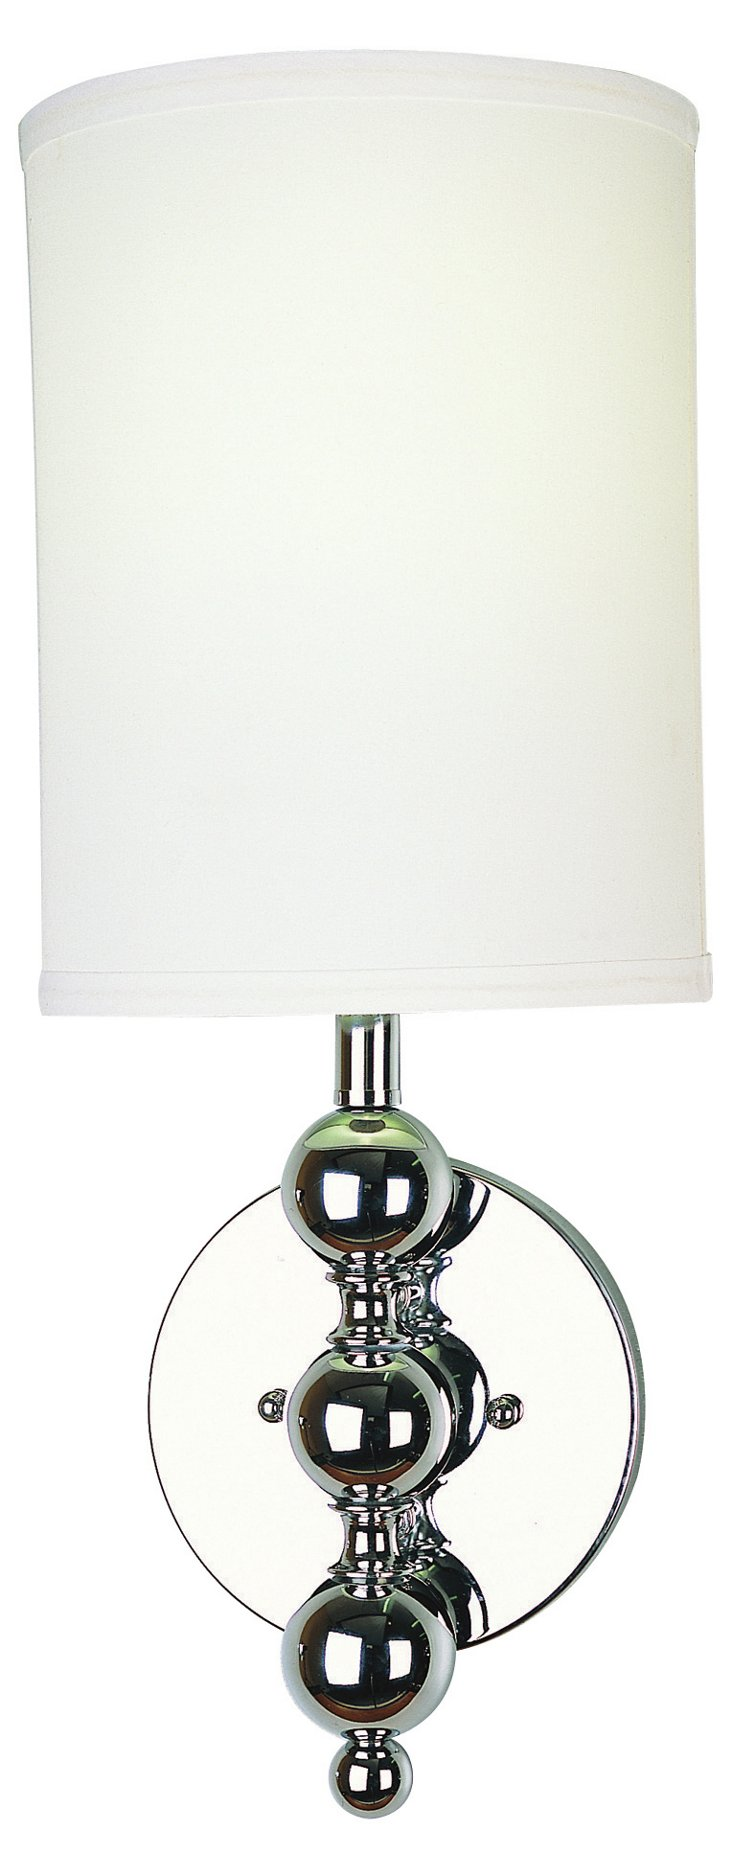 St Clare Ada Wall Sconce, Chrome